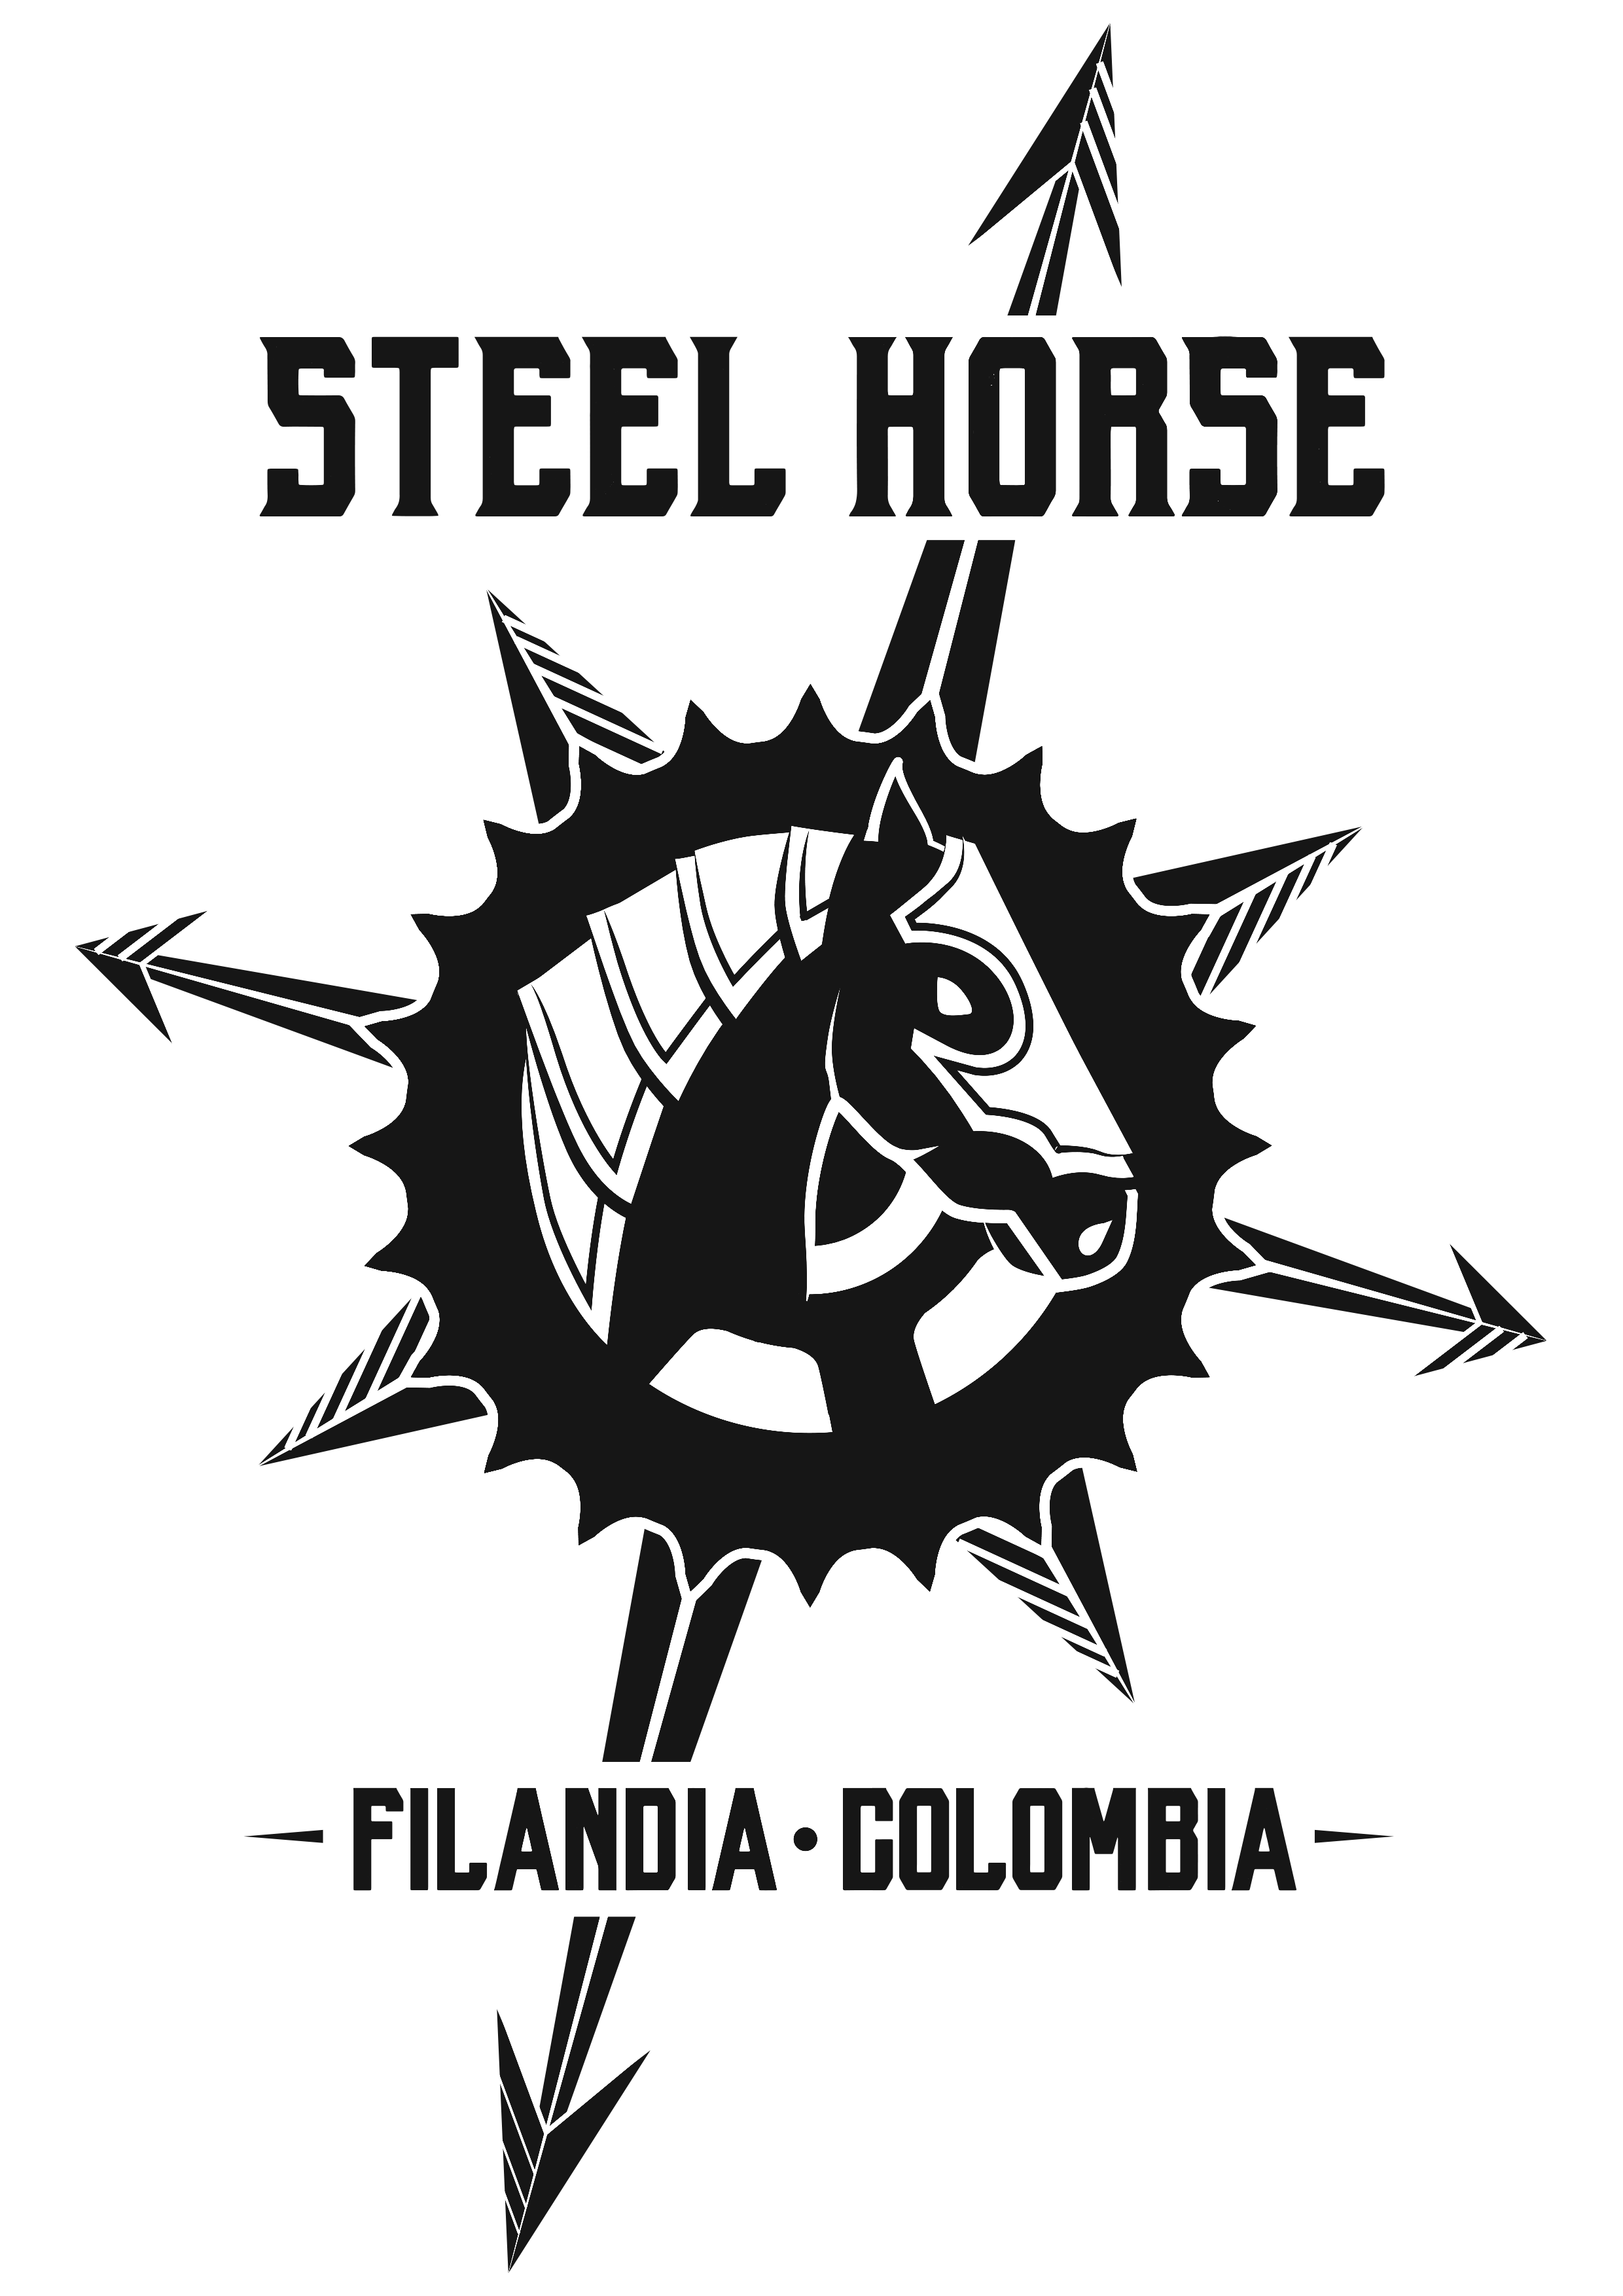 Steel Horse Colombia